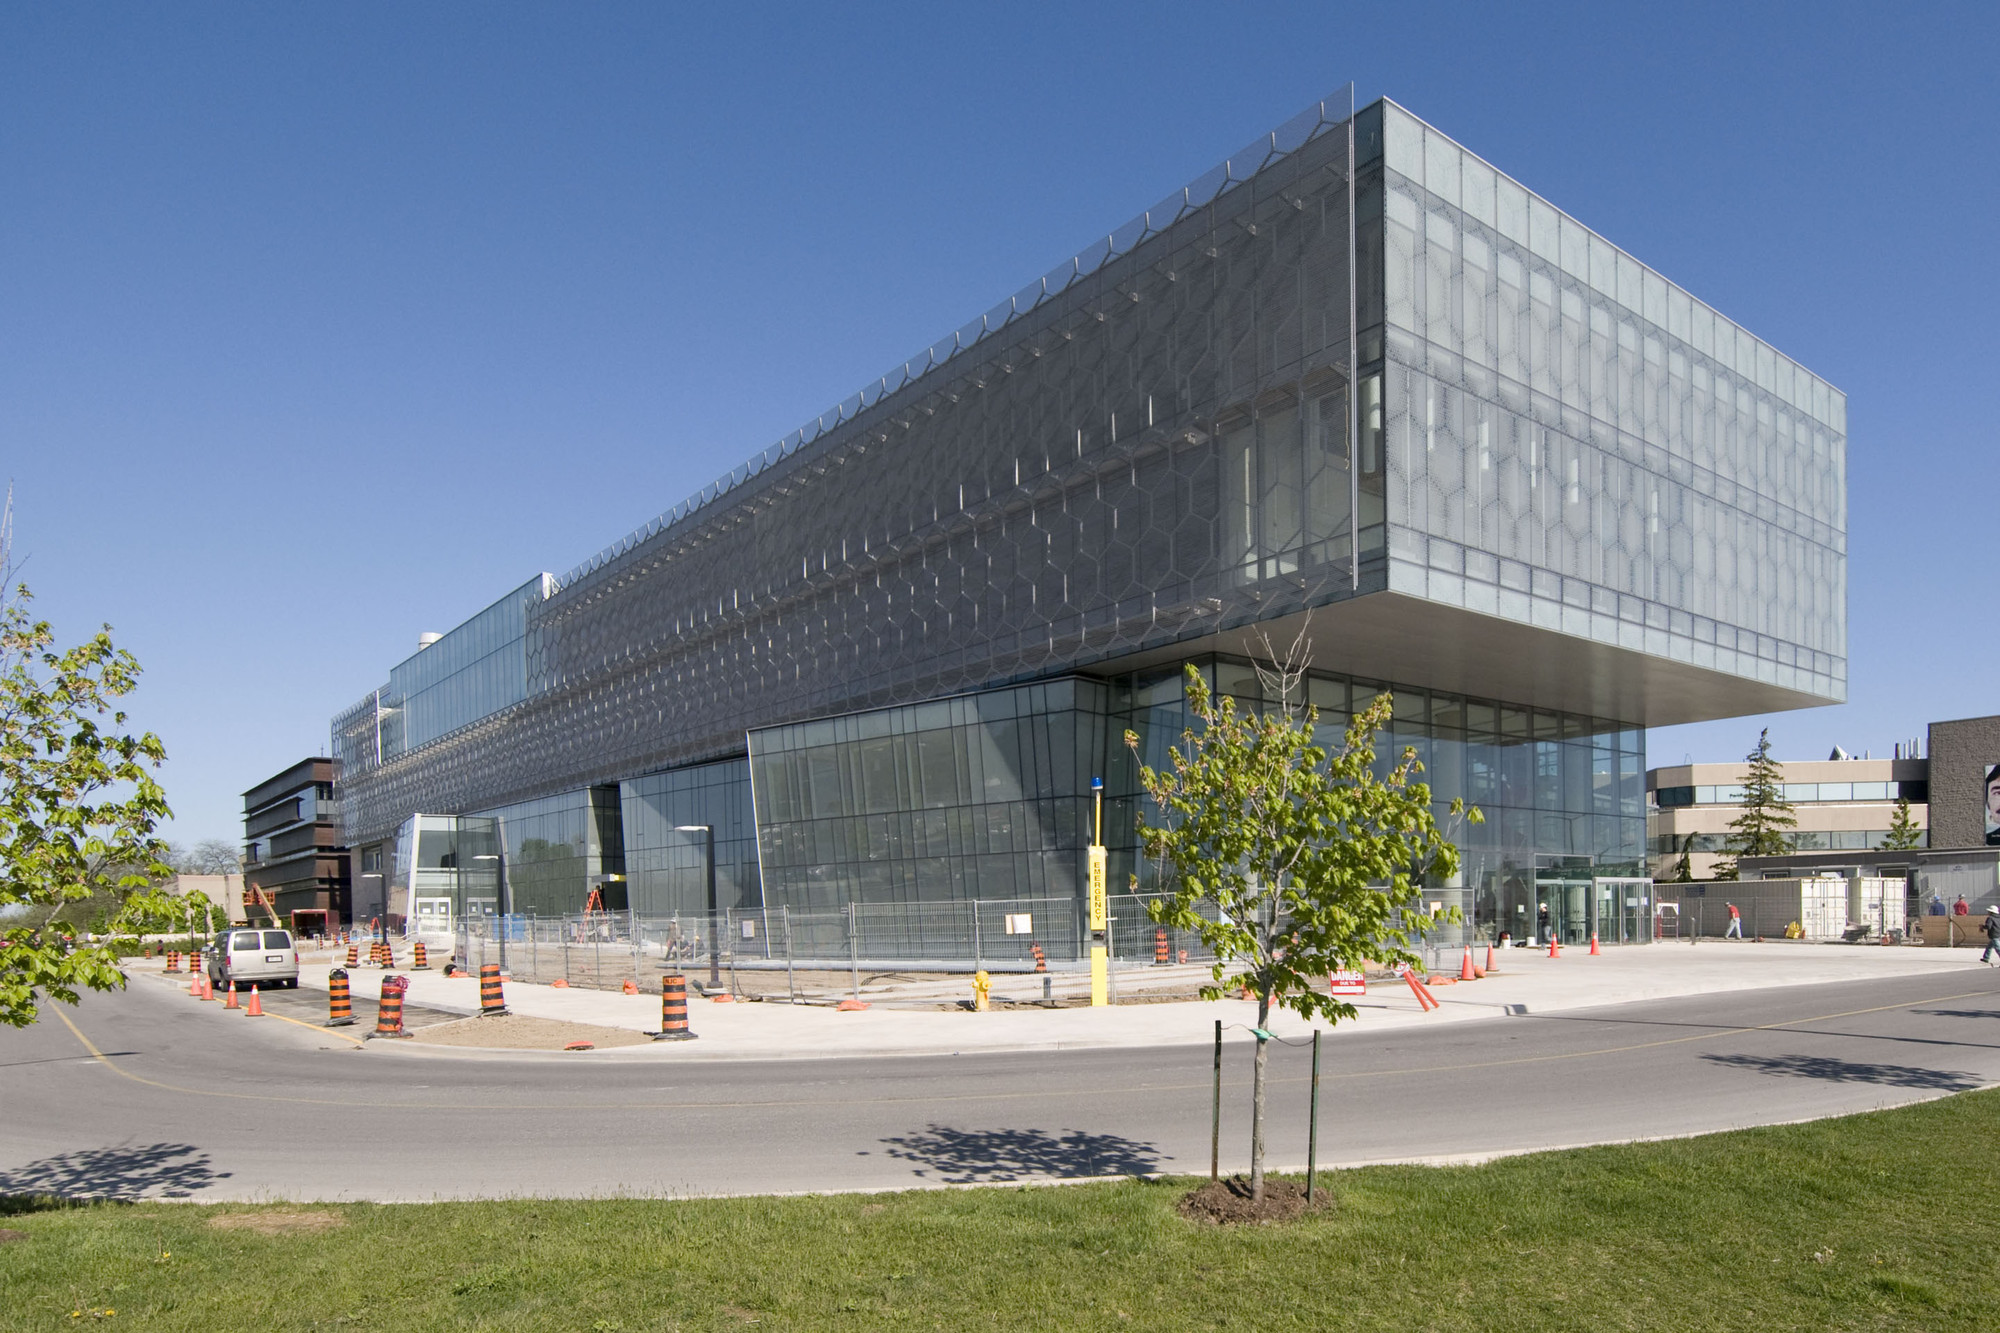 Brock University / Payette - ArchitectsAlliance, Courtesy of Payette